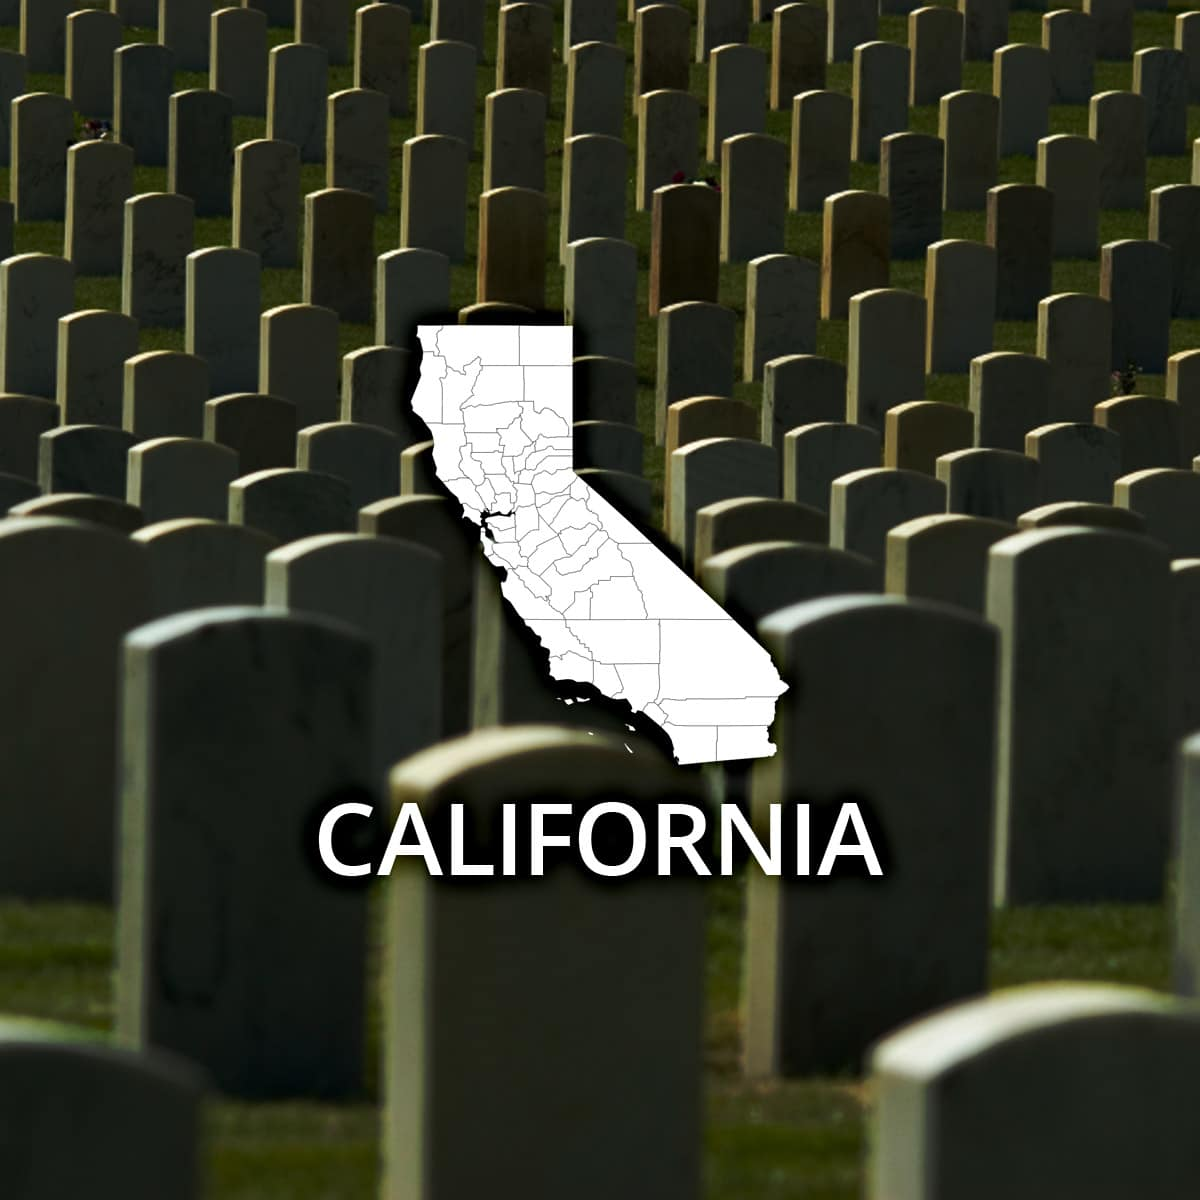 Where to Obtain a California Death Certificate